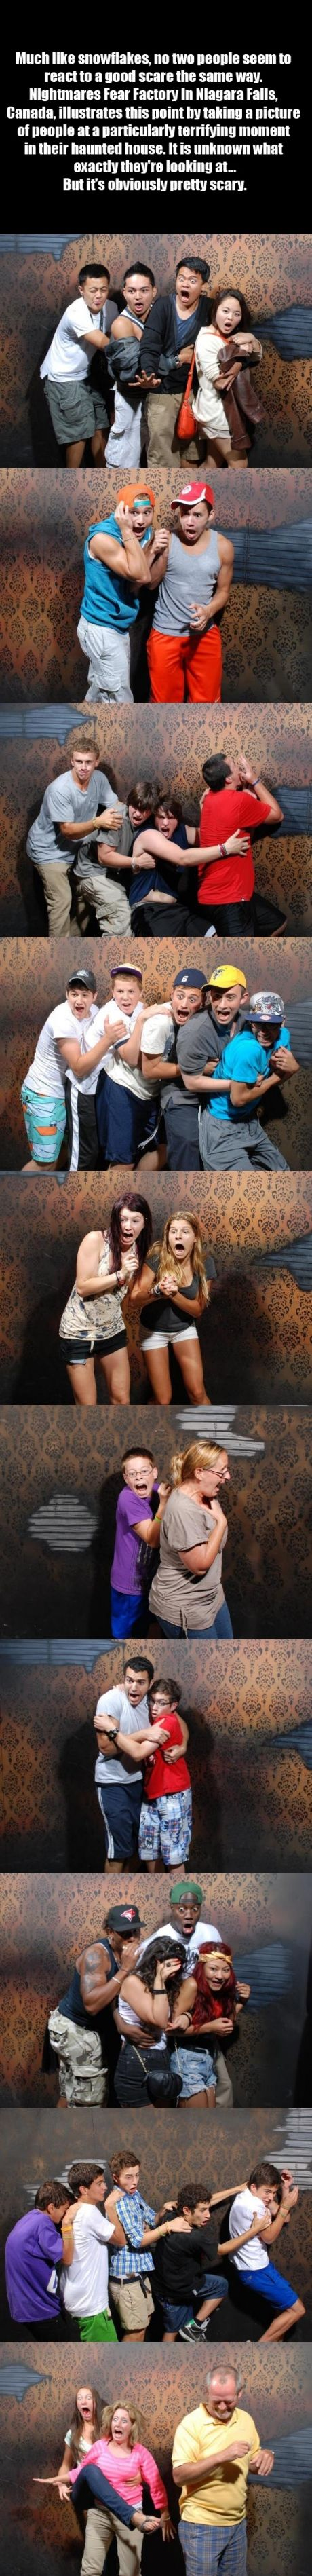 Boo, scare, niagara falls.  I laughed so hard I couldn't breathe and I started crying.